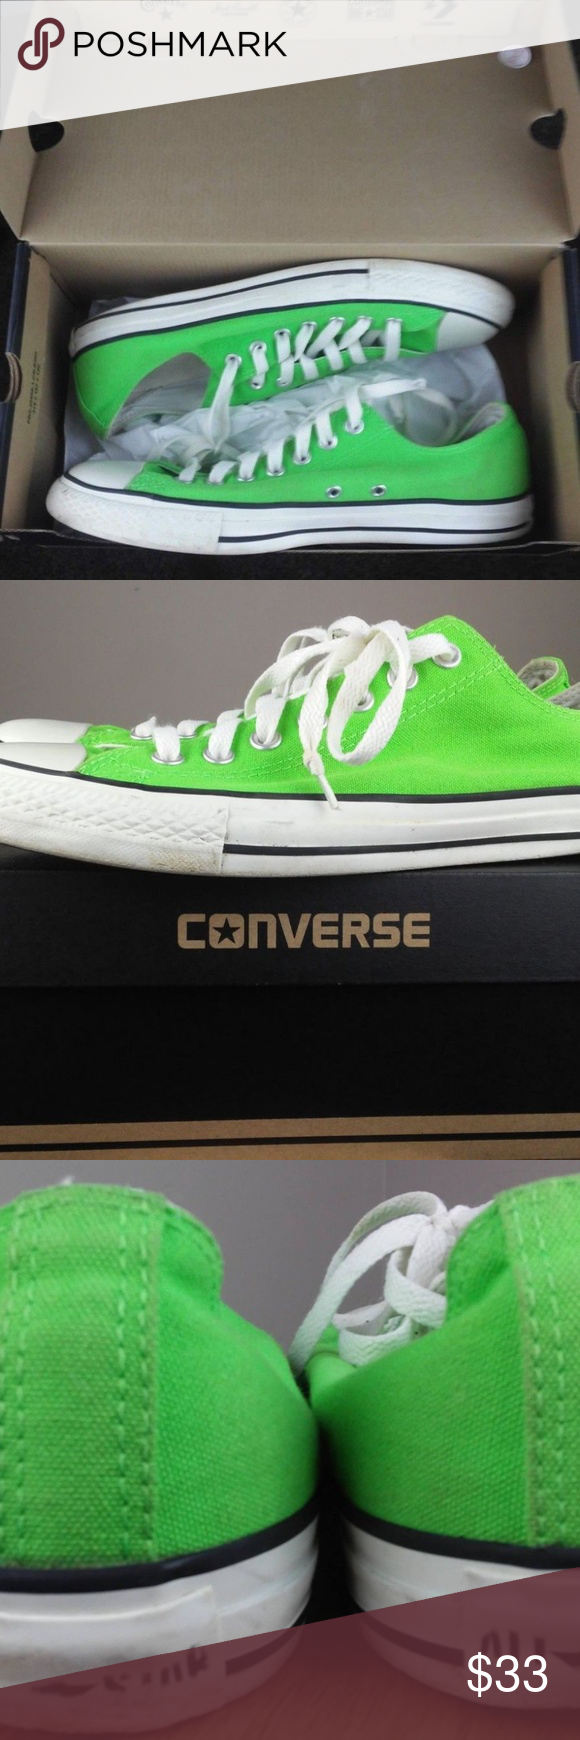 9441e60ed93f Converse Chuck Taylor Womens size 11 Neon Green Pre-owned but in excellent  condition.